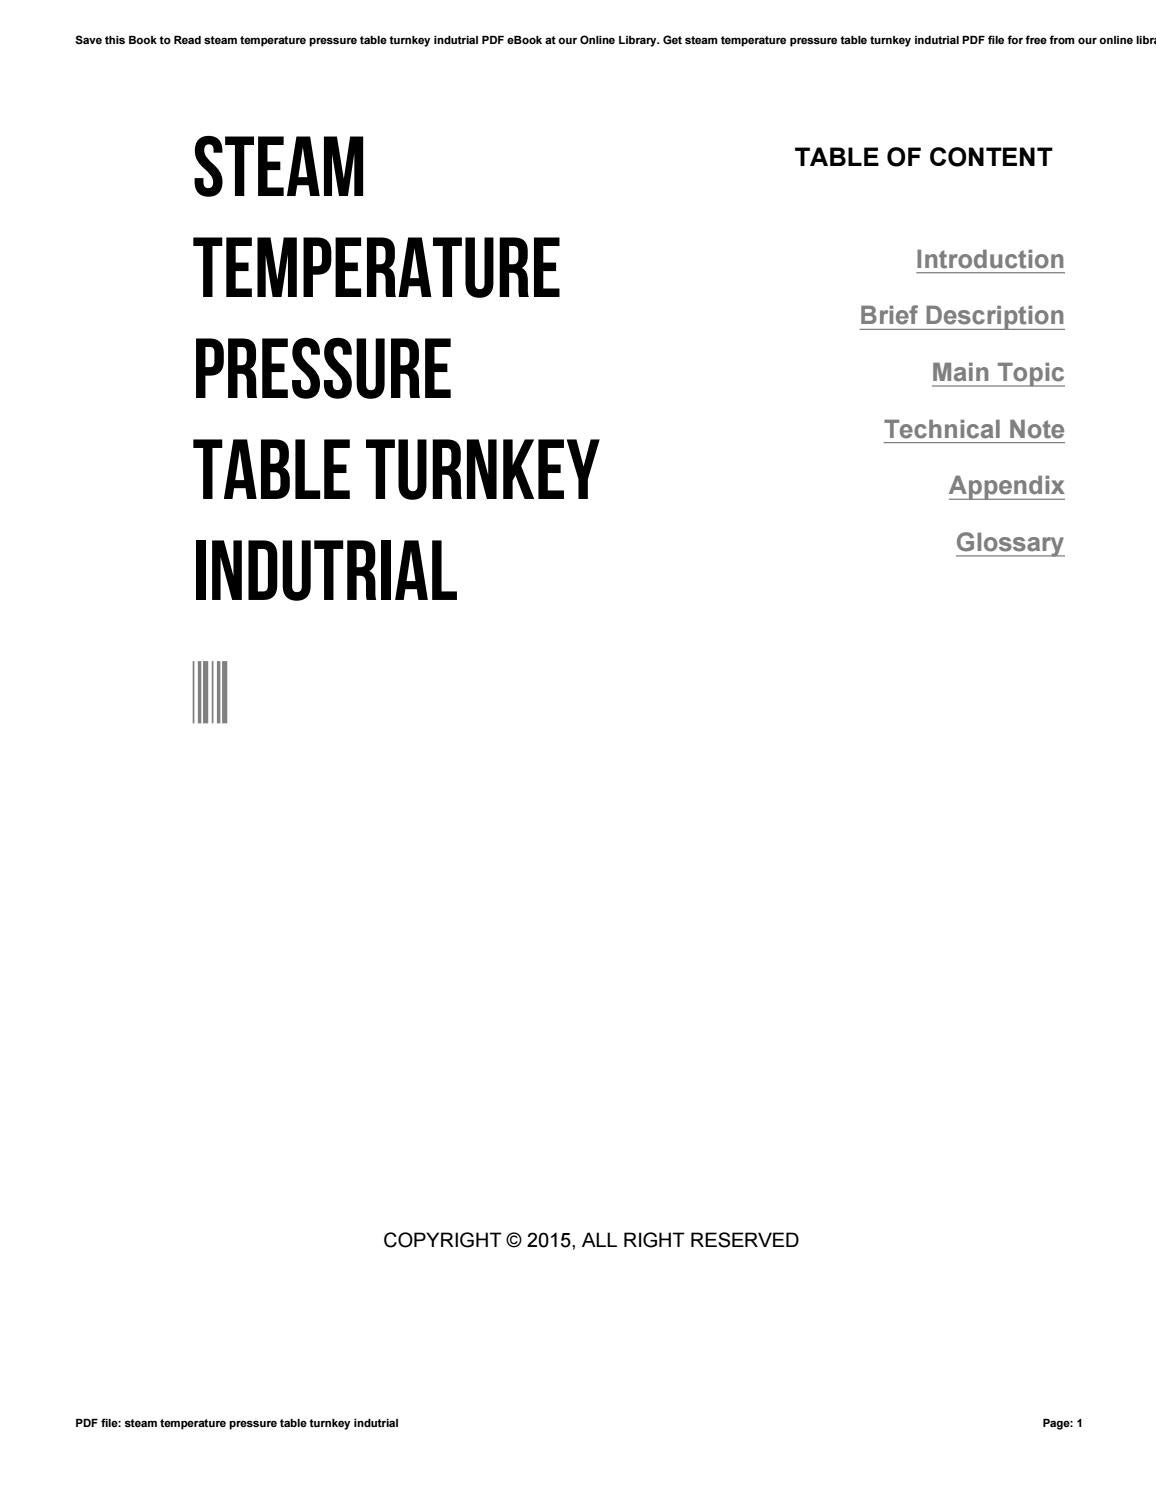 Steam Temperature Pressure Table Turnkey Indutrial By